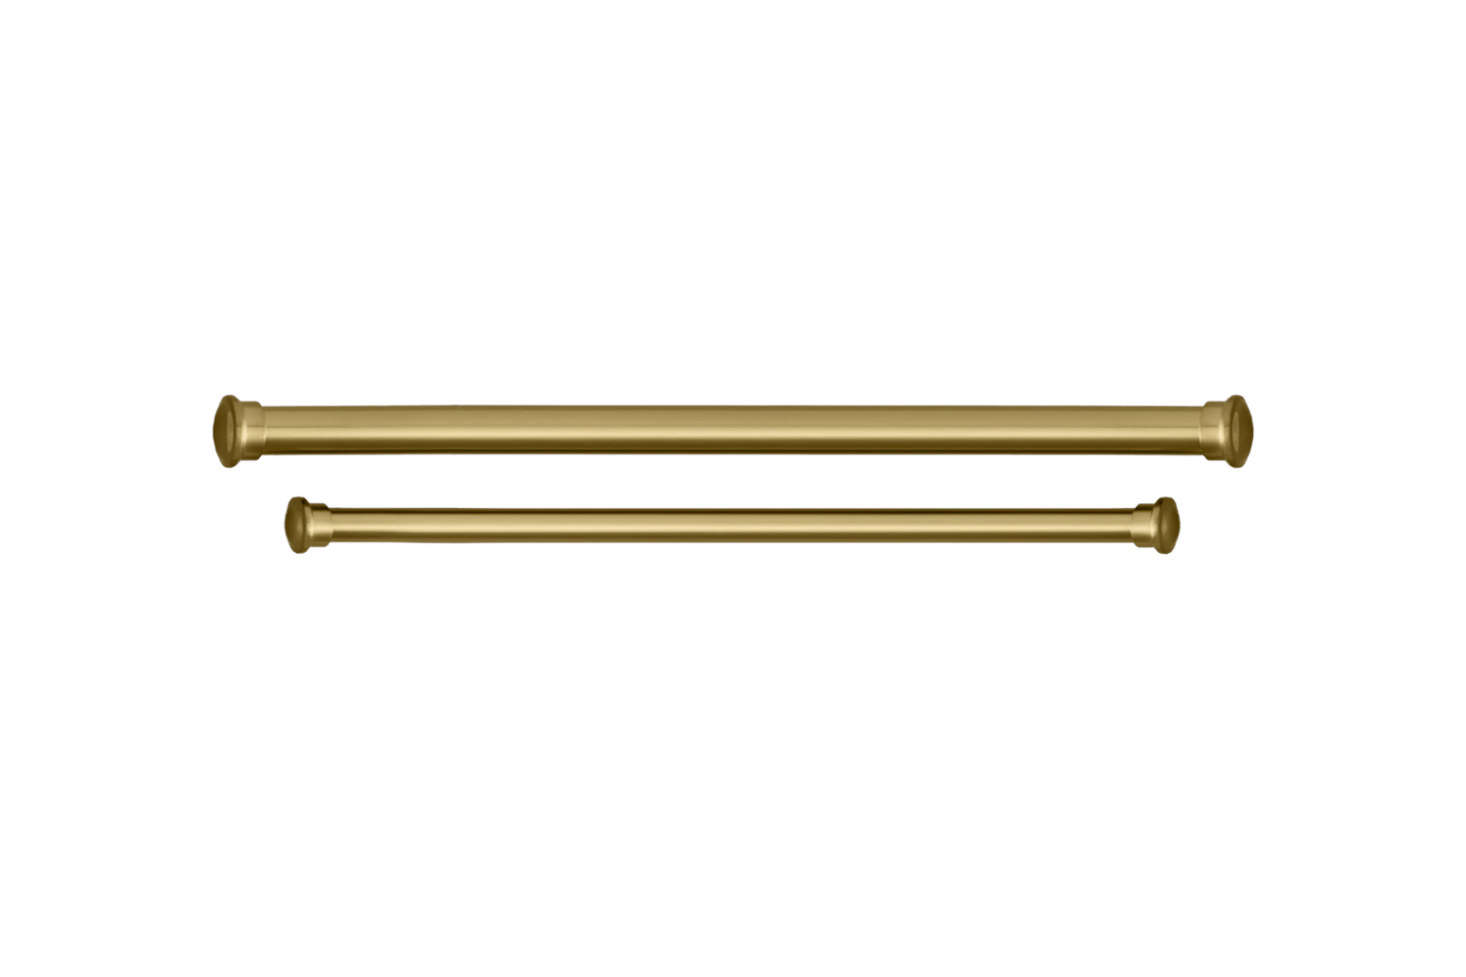 The brass curtain rod is the Estate Extension Brass Rod ($69 to $src=